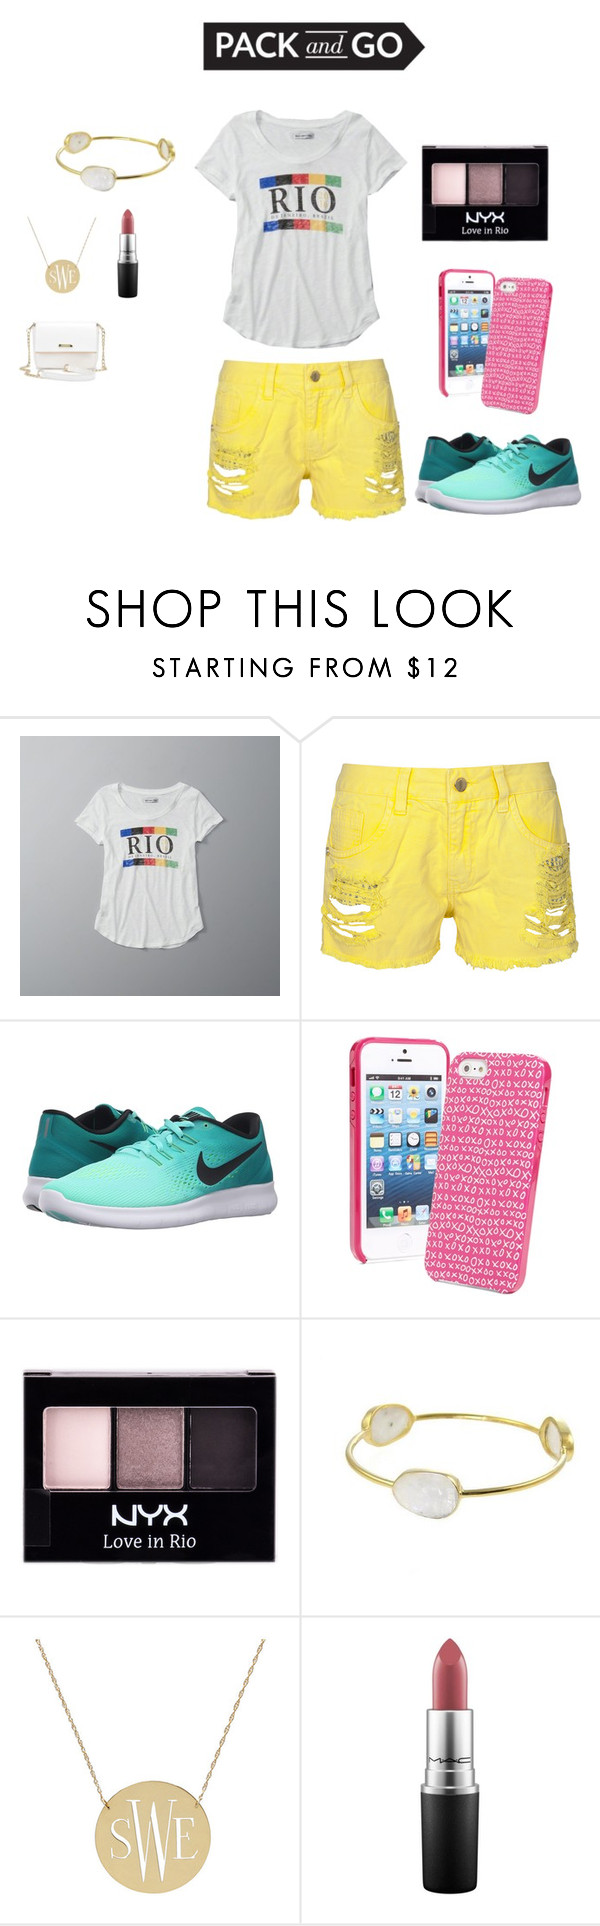 """Rio2016"" by bearteddyblitz on Polyvore featuring Abercrombie & Fitch, NIKE, Vera Bradley, NYX and MAC Cosmetics"